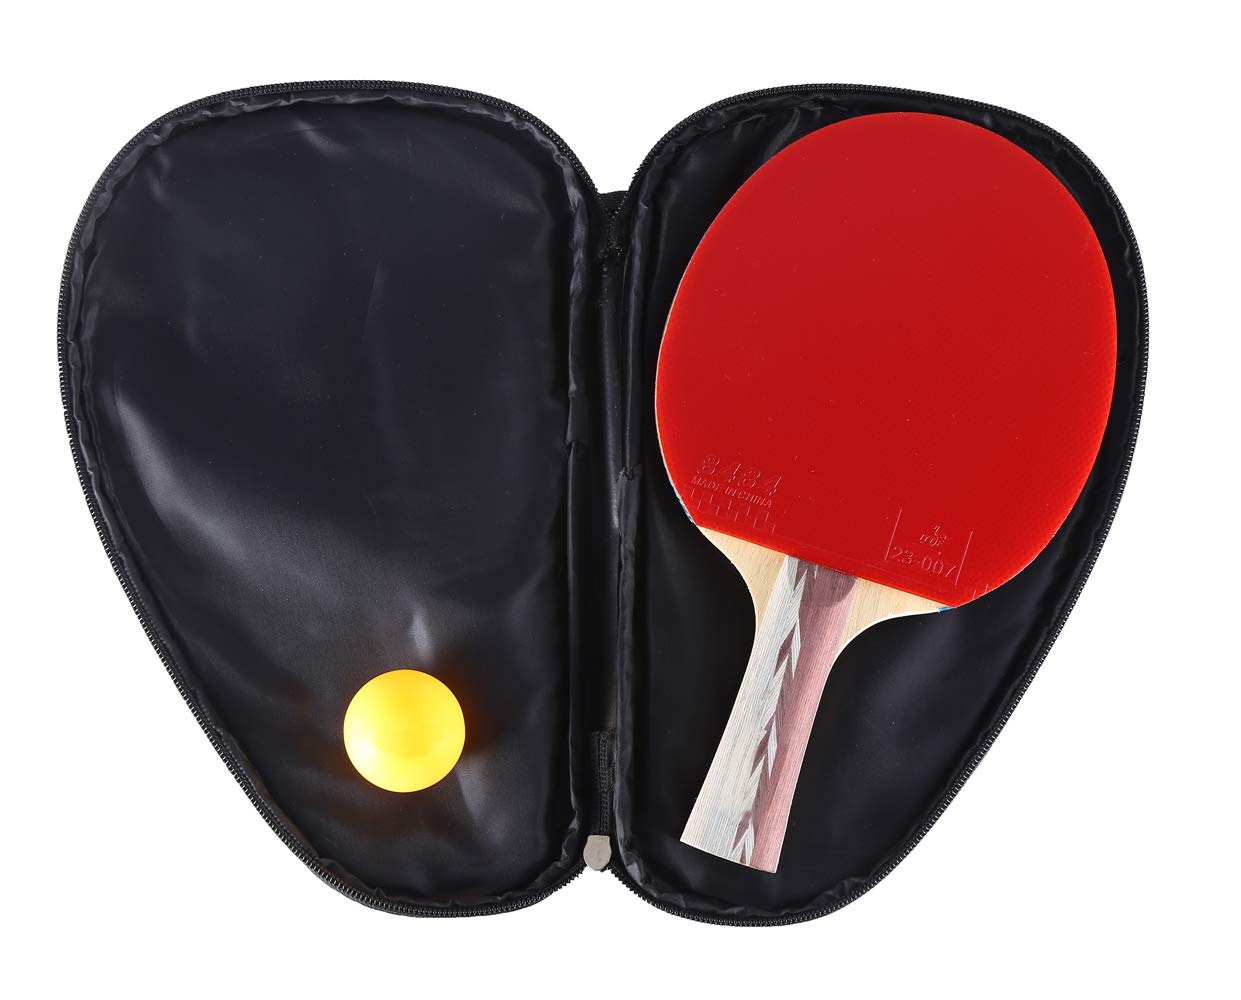 POPHN 5 Star Table Tennis Paddle Professional Ping Pong Racket with Racket Case and 1 Table Tennis Balls for Professional Player SZHNGC